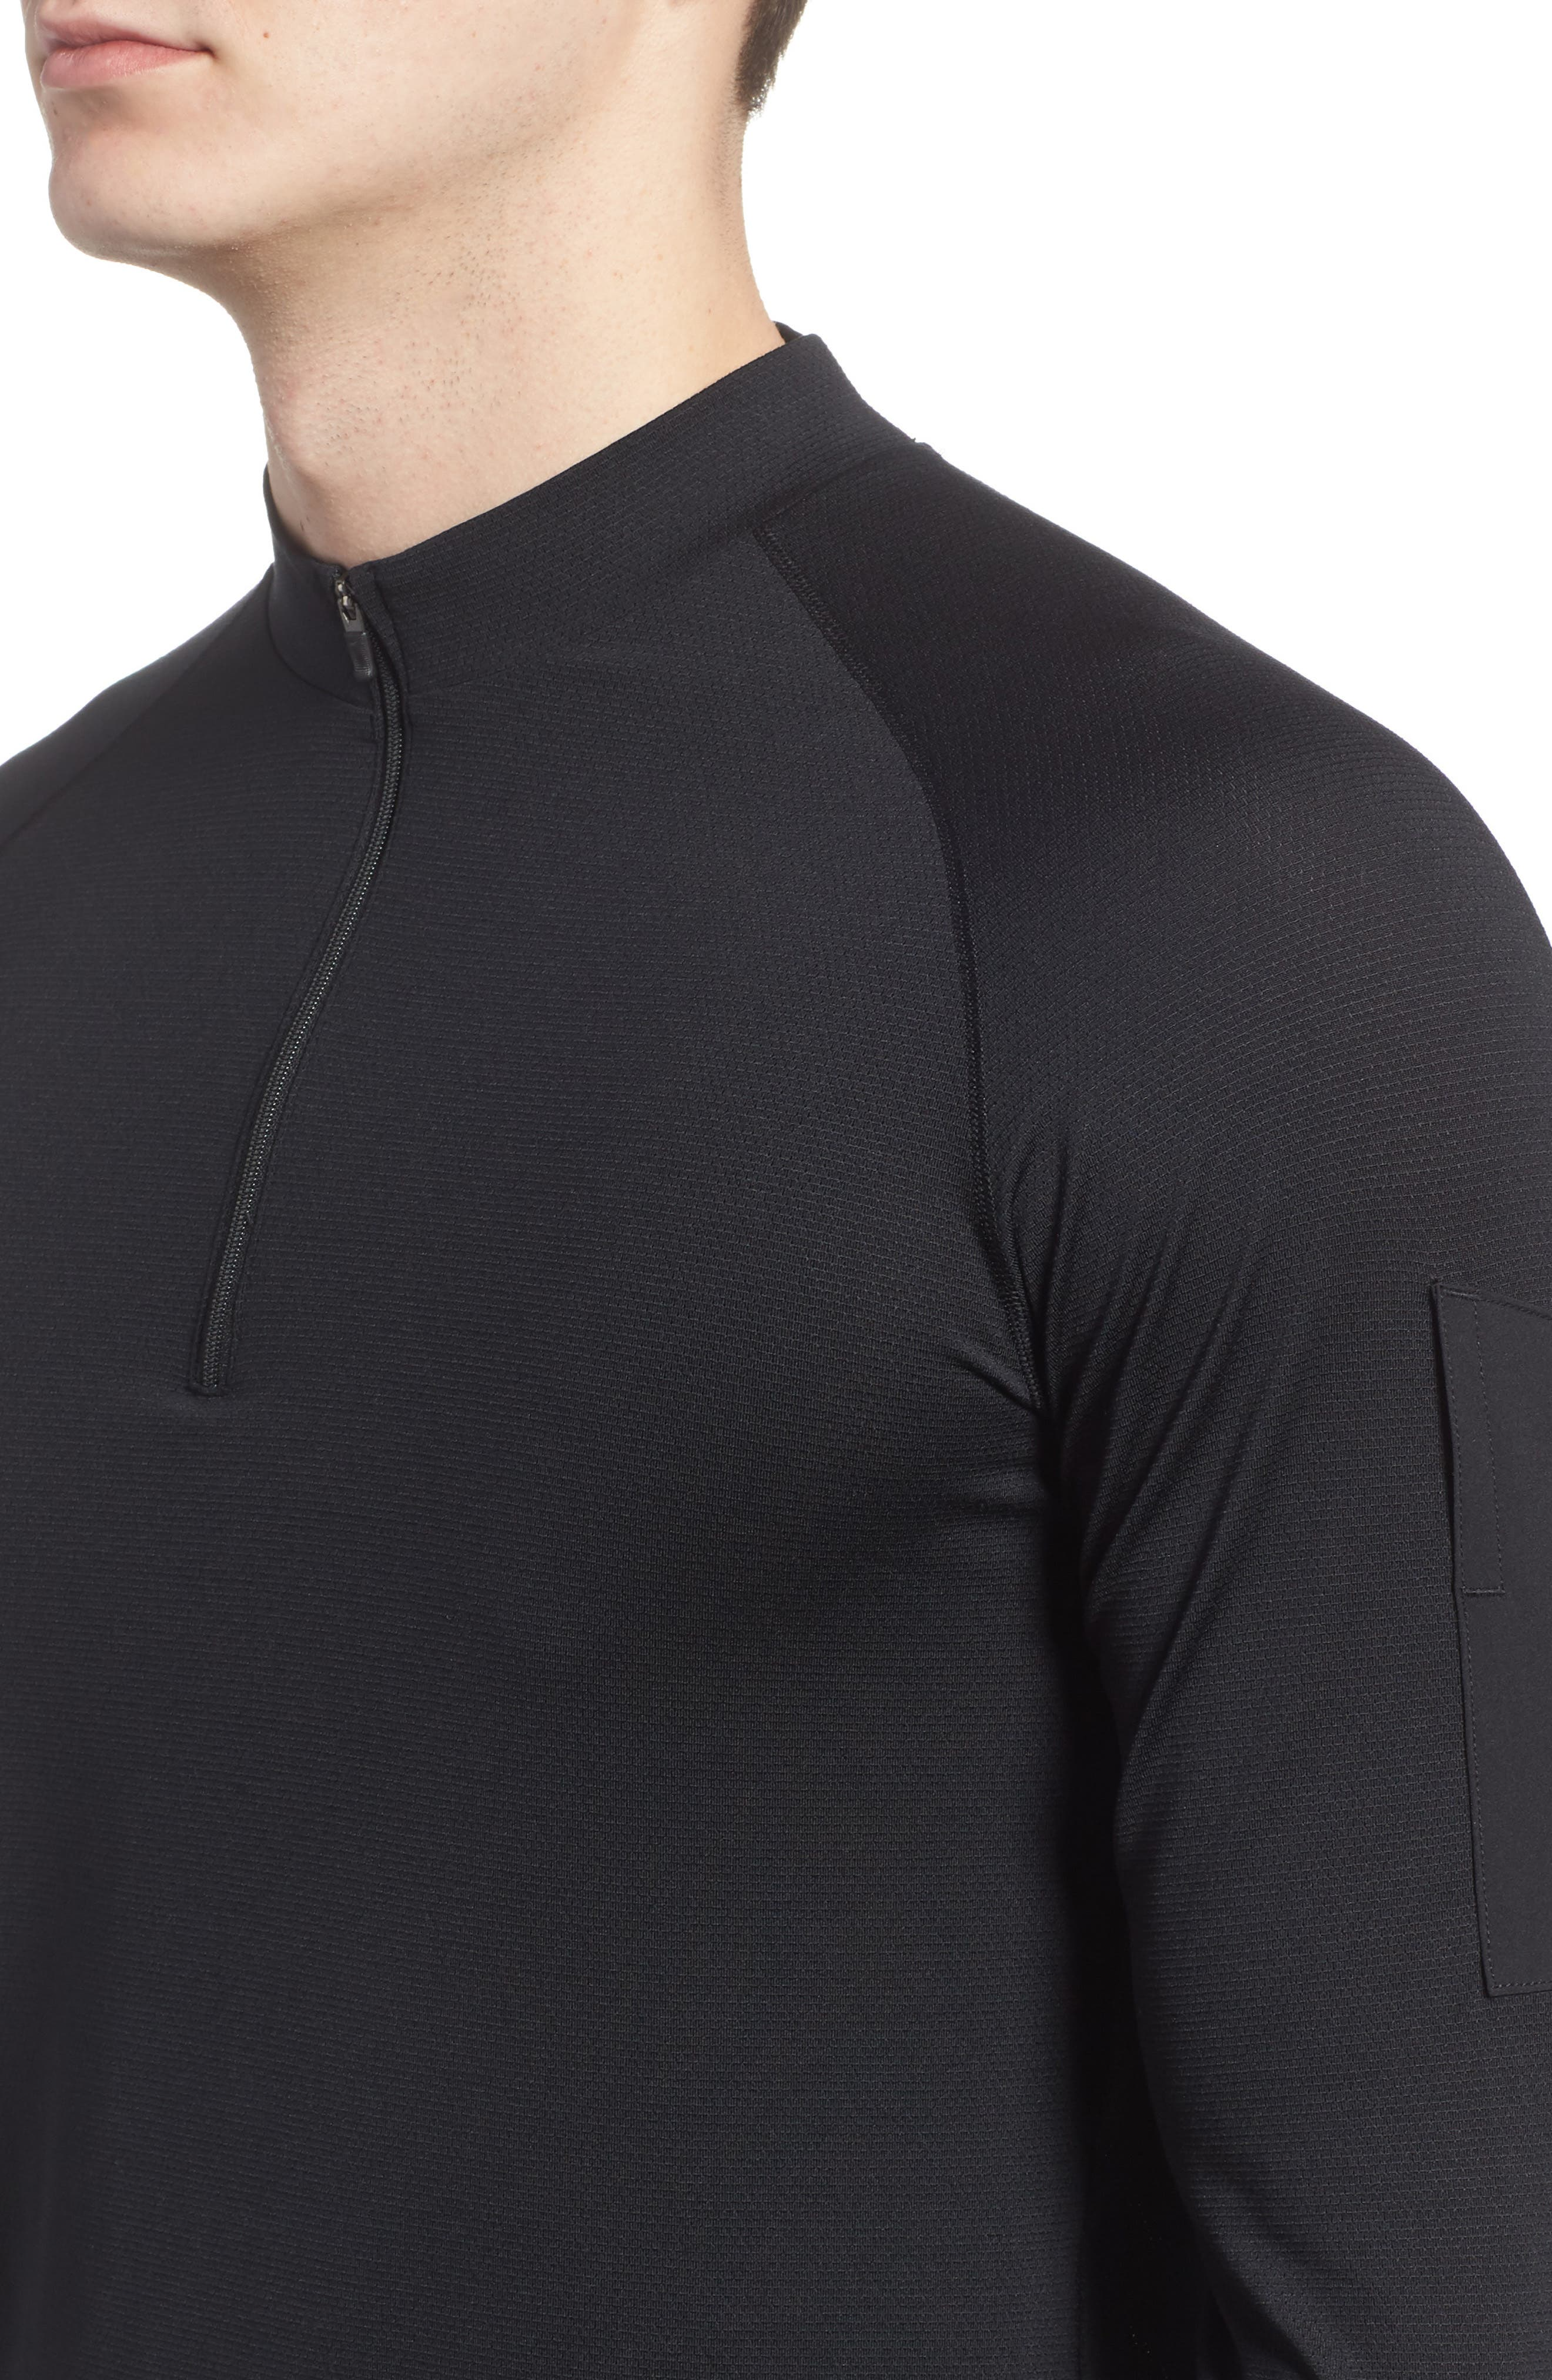 Pro Fitted Utility Dry Tech Sport Top,                             Alternate thumbnail 4, color,                             Black/ Black